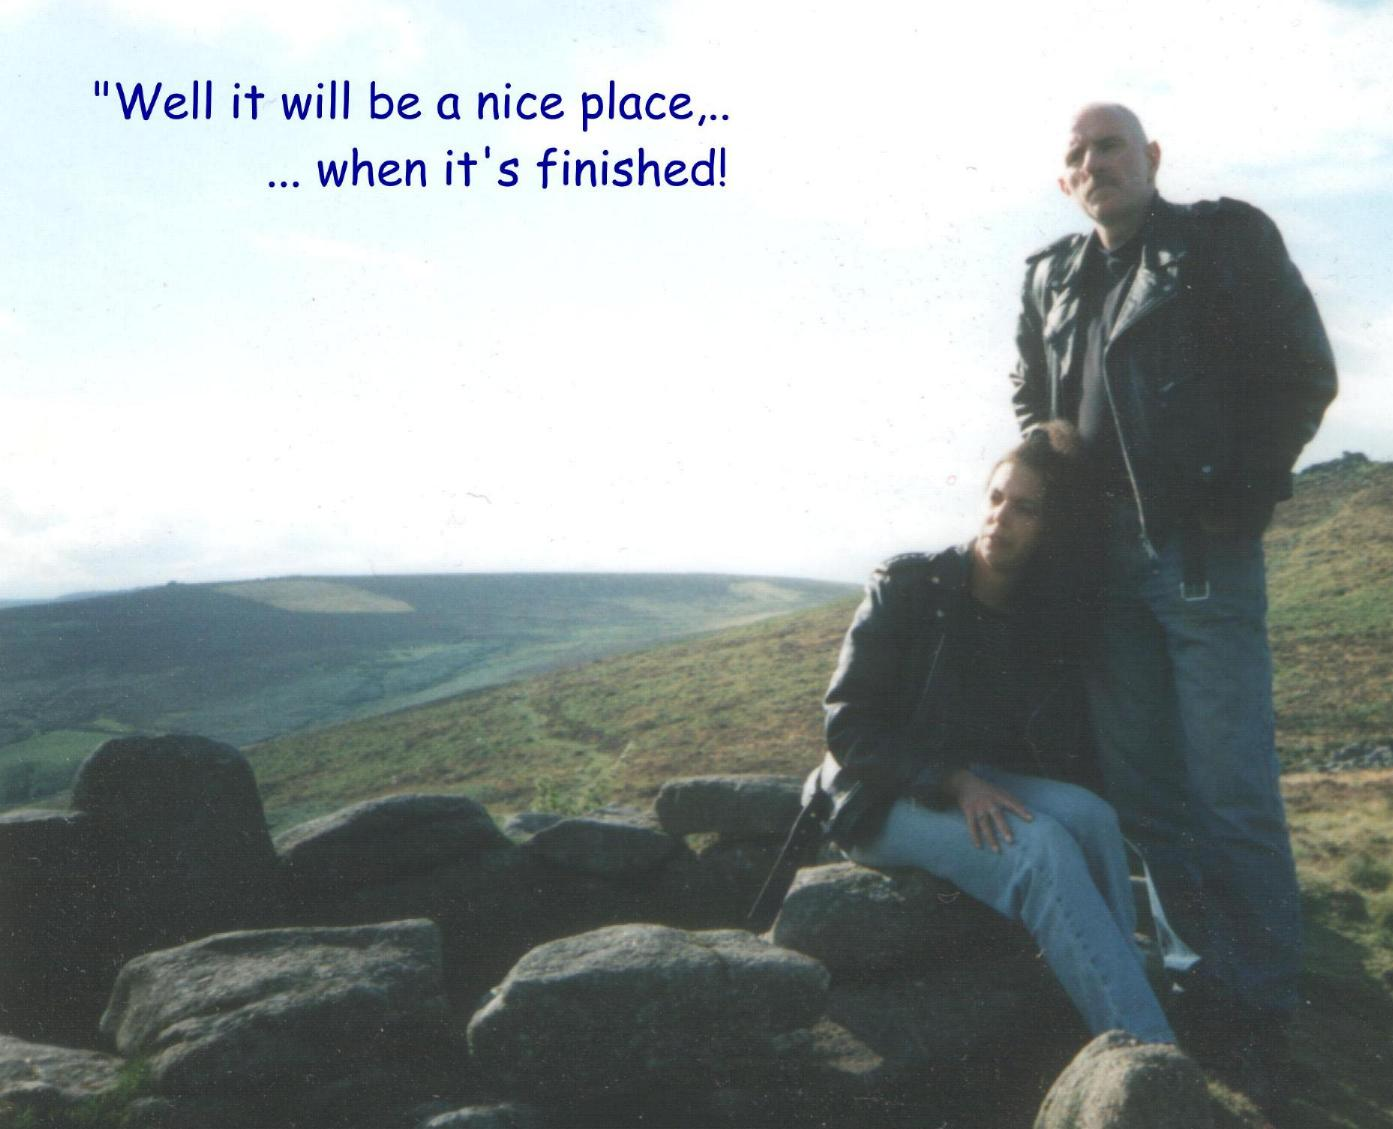 pb and pms all about what pbsong com ah the picture was taken by my daughter ruth and is kate an me in the ancient like me village of grimspound in the dartmoor national park